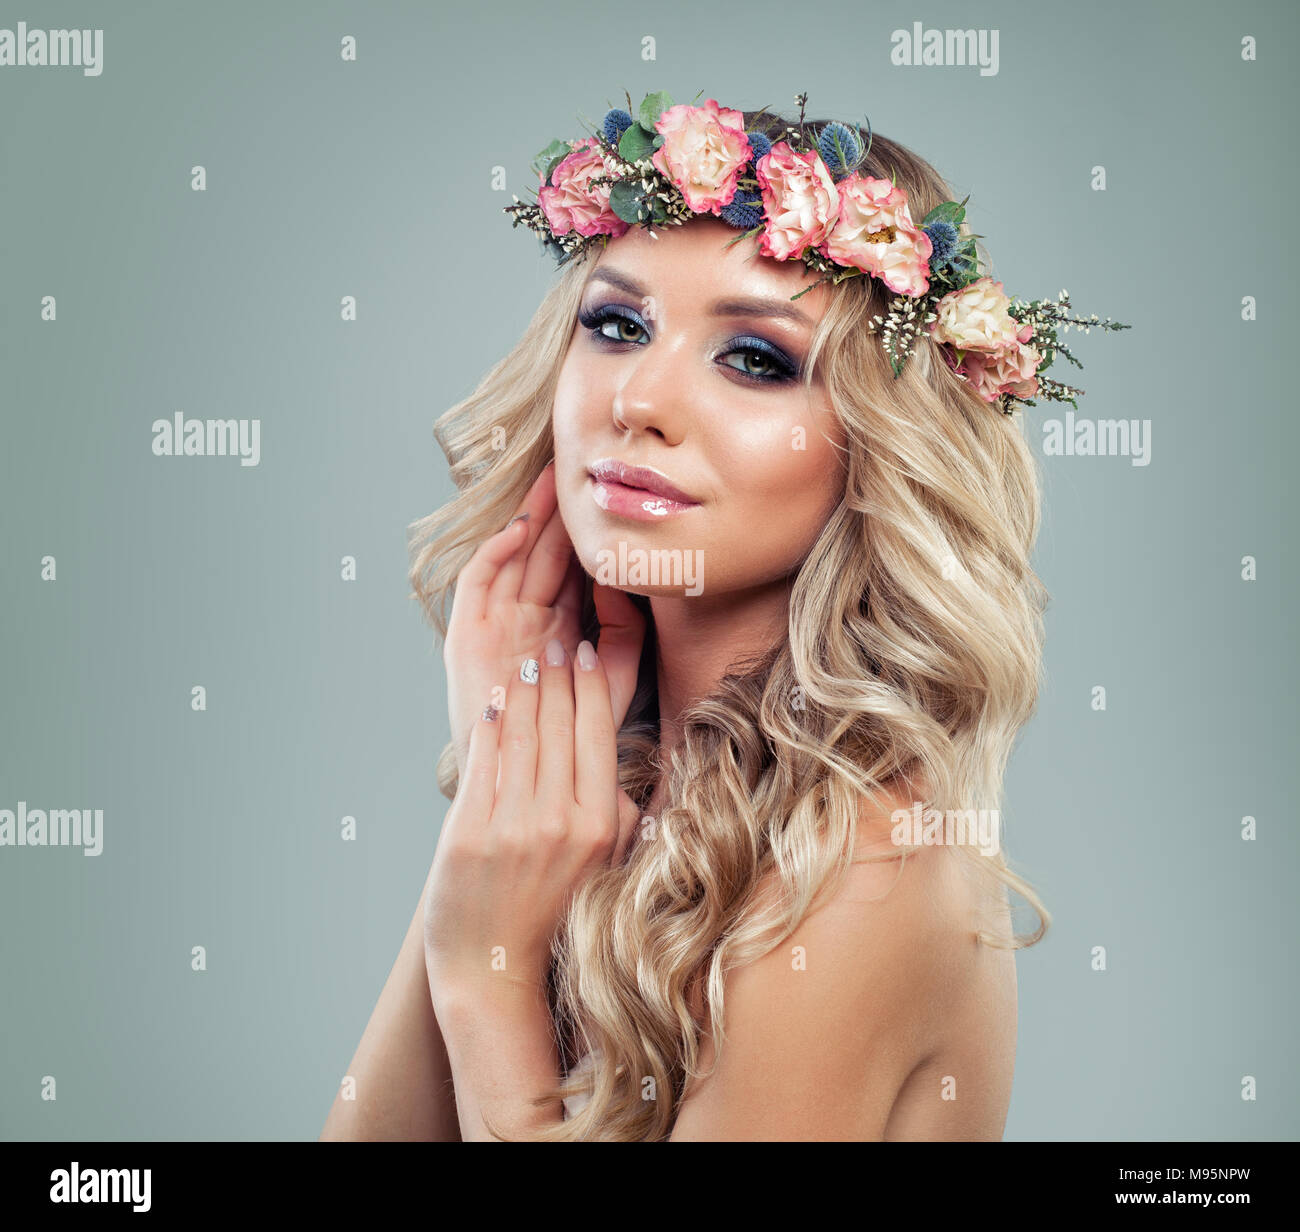 Spring beauty beautiful woman with flowers blonde permed hairstyle spring beauty beautiful woman with flowers blonde permed hairstyle and healthy skin on blue background izmirmasajfo